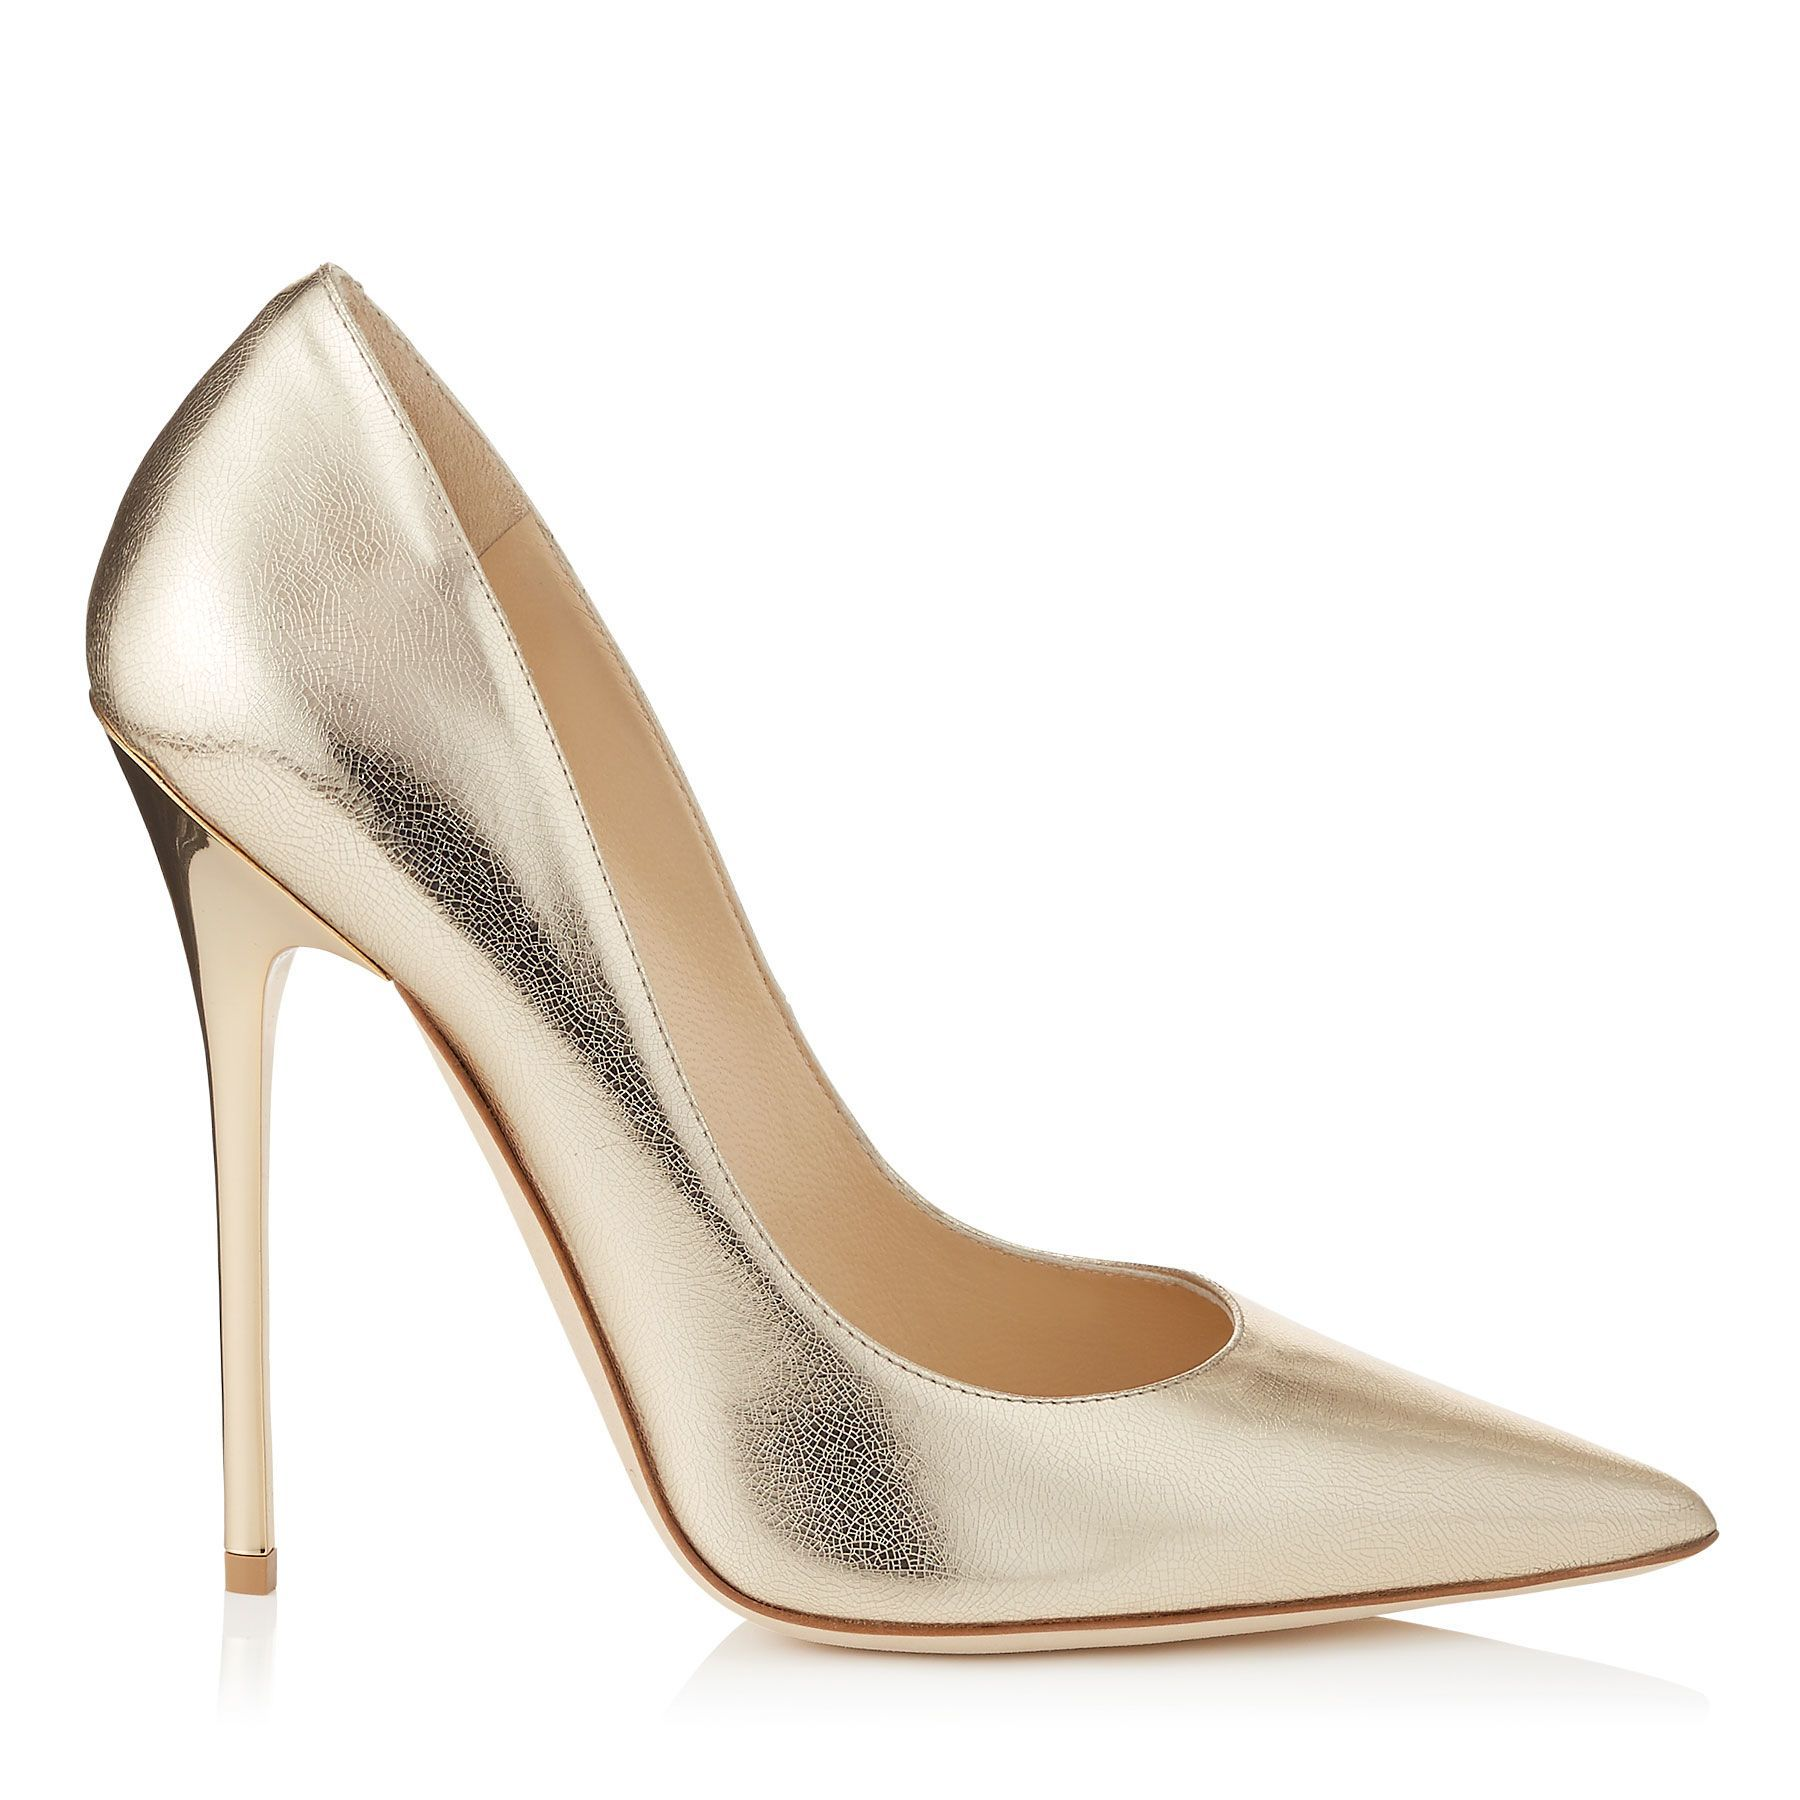 Nude Etched Mirror Leather Pointy Toe Pumps   Anouk   Pre Fall 15   JIMMY  CHOO